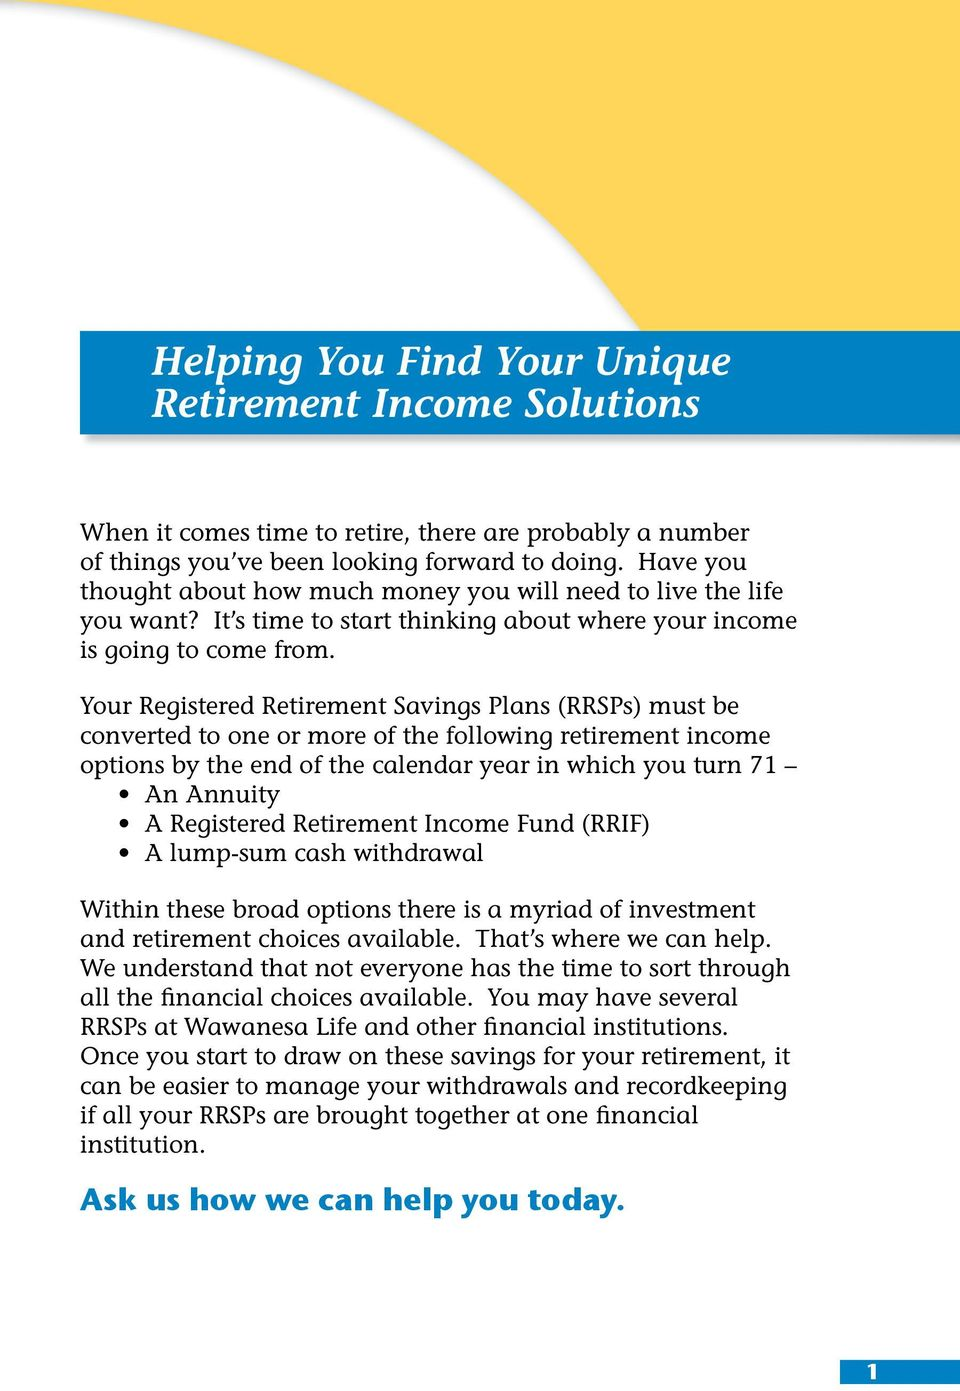 Your Registered Retirement Savings Plans (RRSPs) must be converted to one or more of the following retirement income options by the end of the calendar year in which you turn 71 An Annuity A